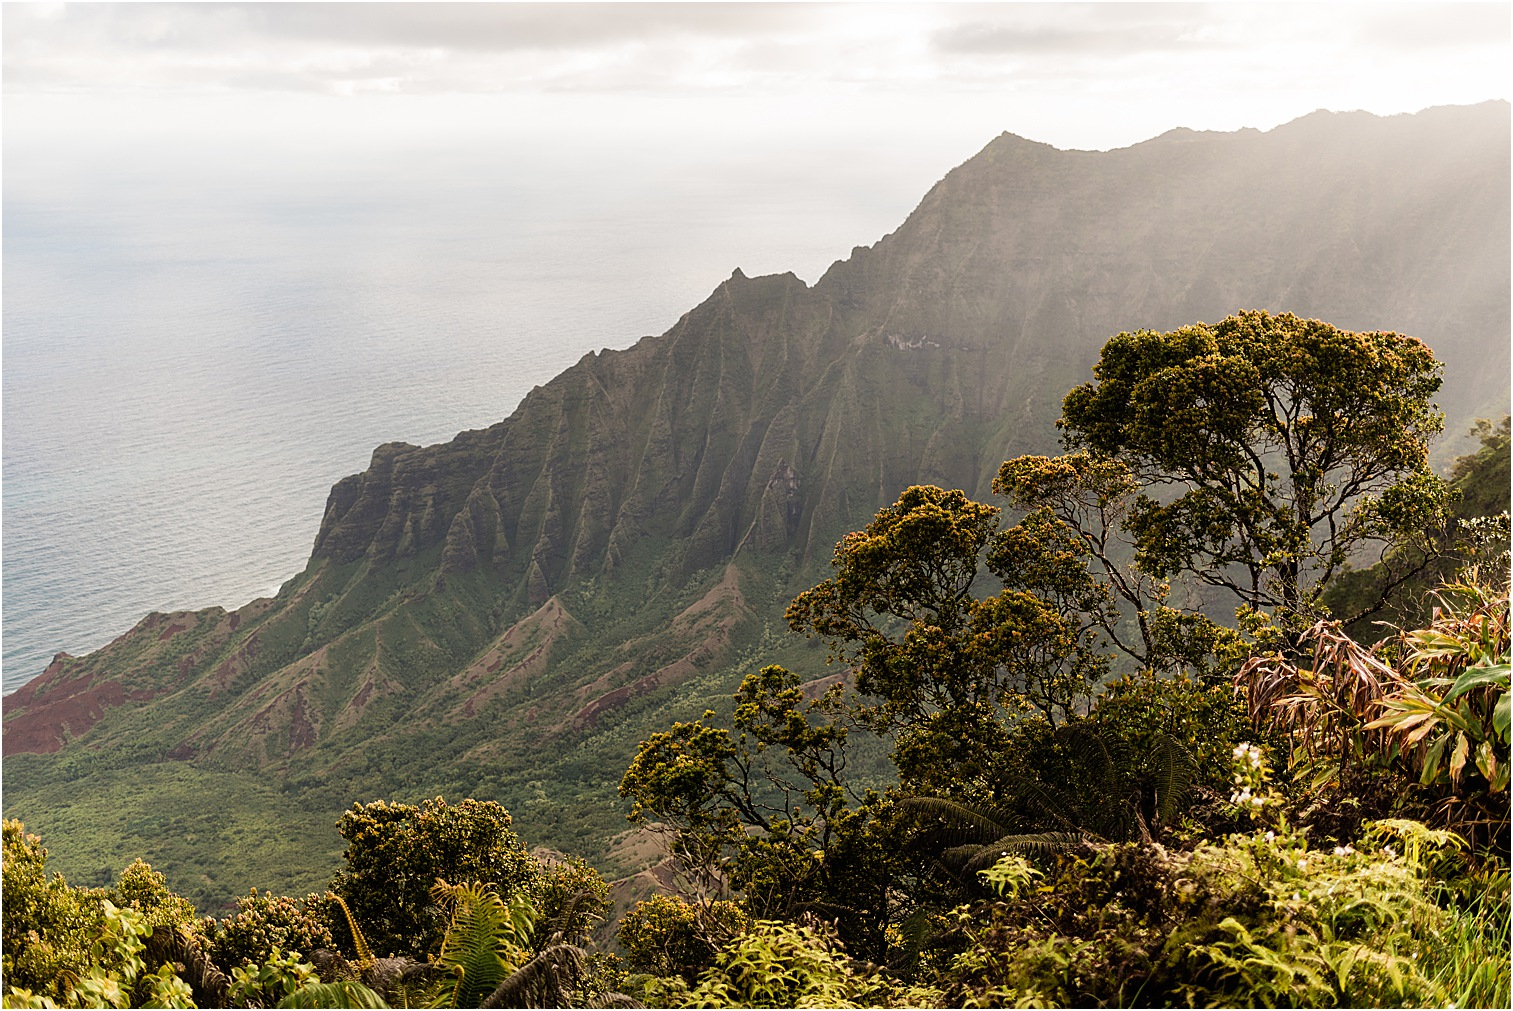 Kalalau Valley at Sunrise. Image by Forthright Photo